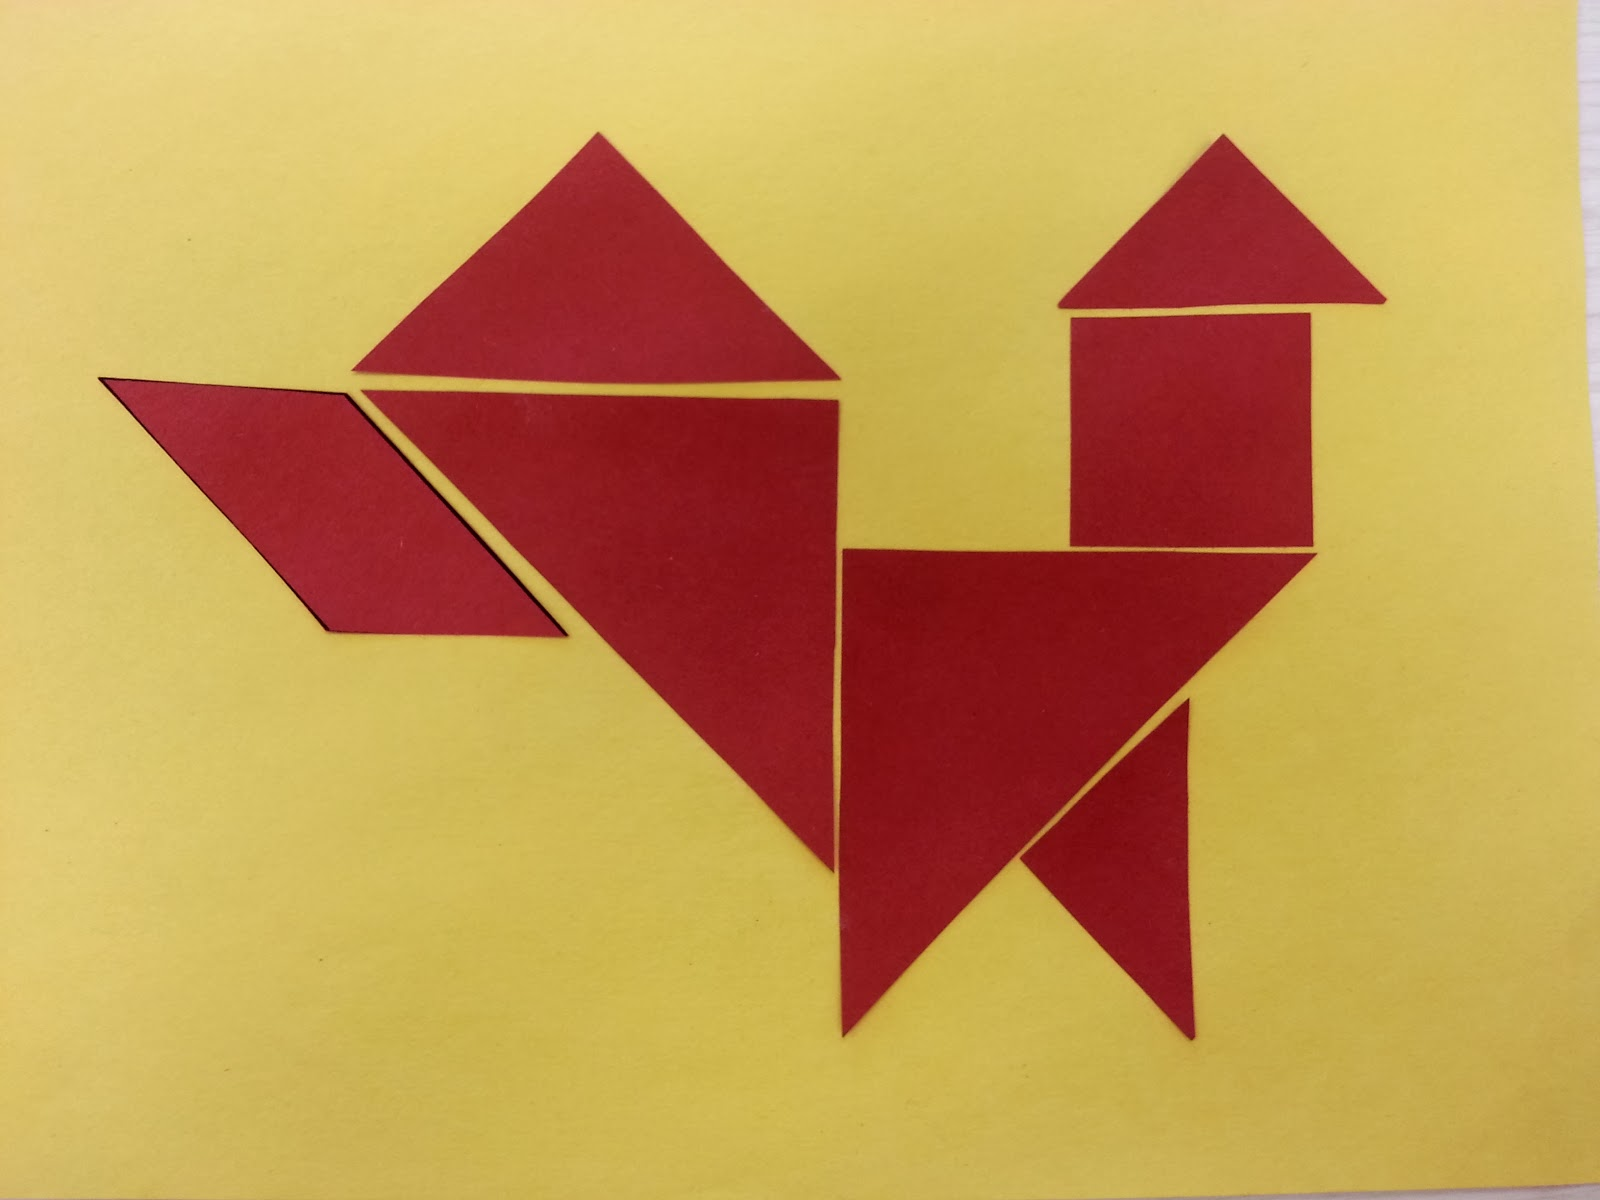 Lunar new year crafts - Year Of The Rooster Rooster Tangram Rooster Crafts For Kids Chicken Crafts For